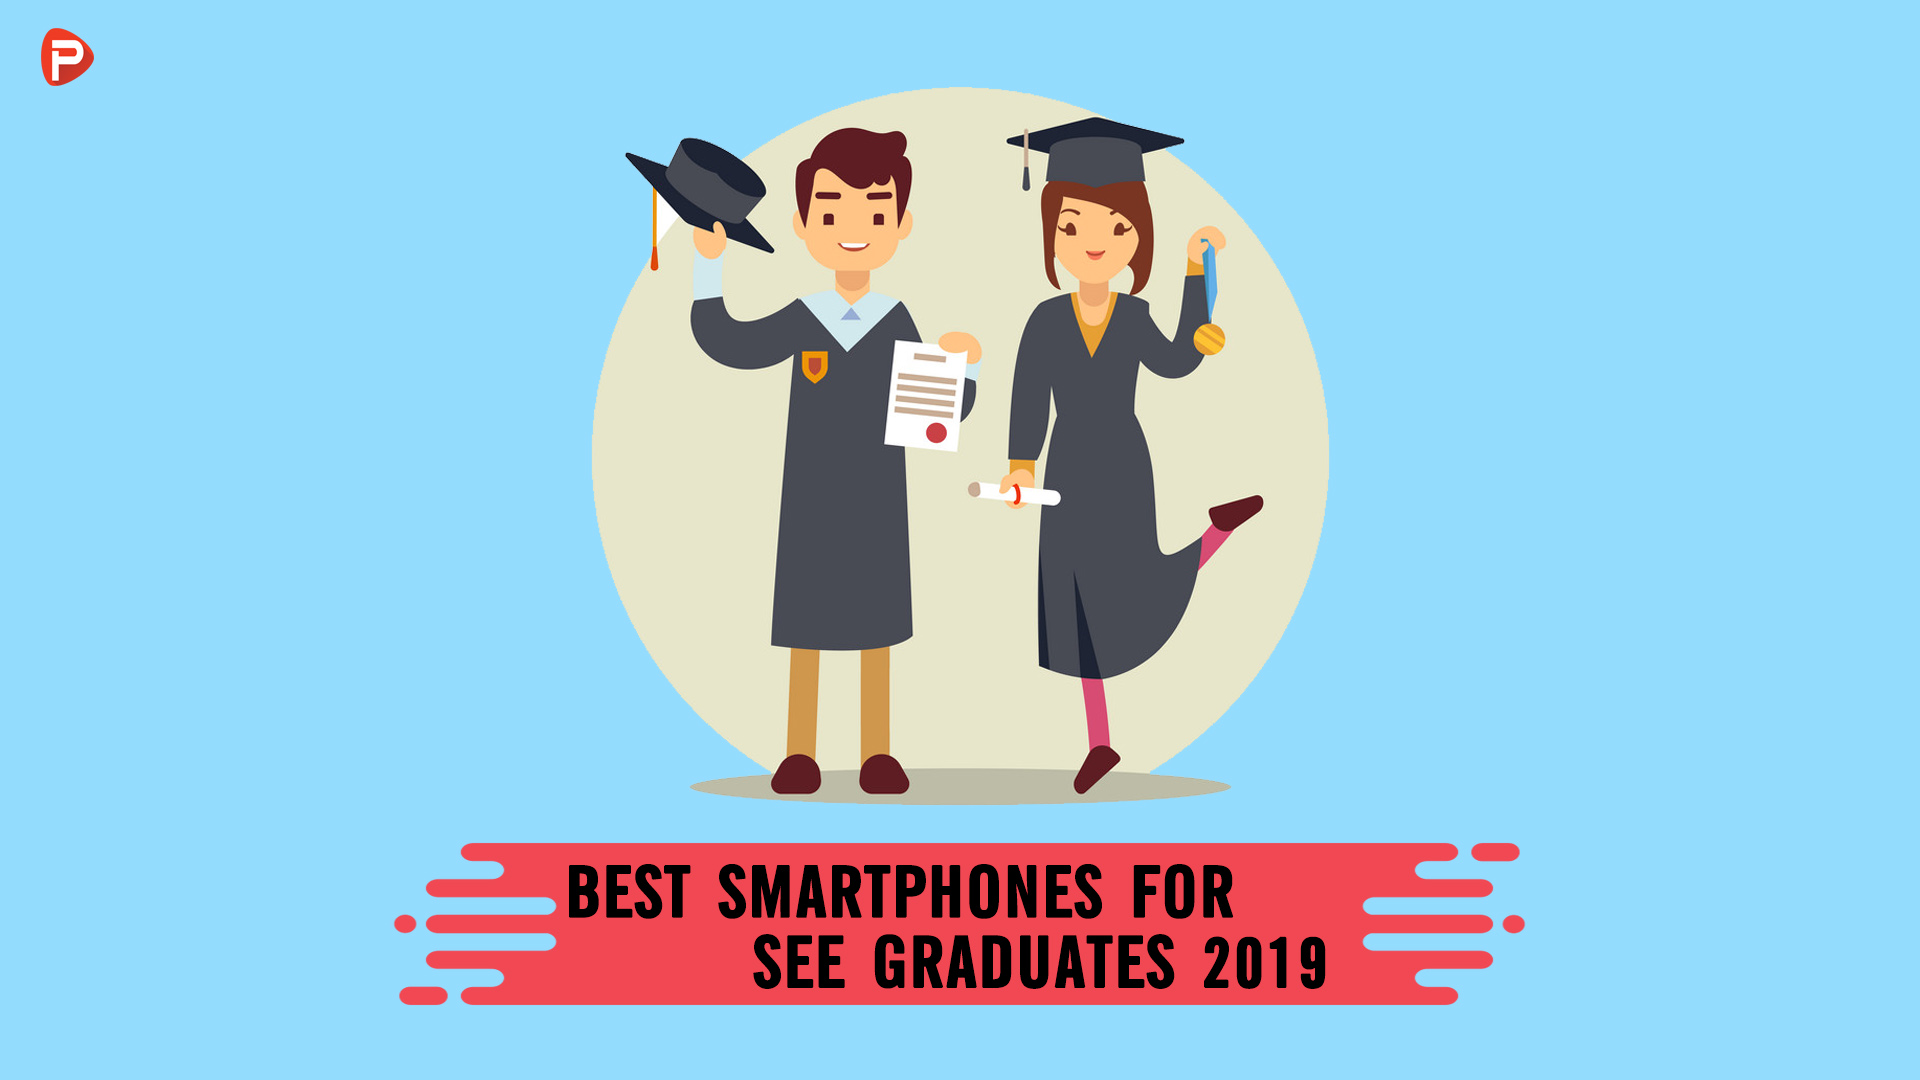 Best Smartphones for SEE Graduates